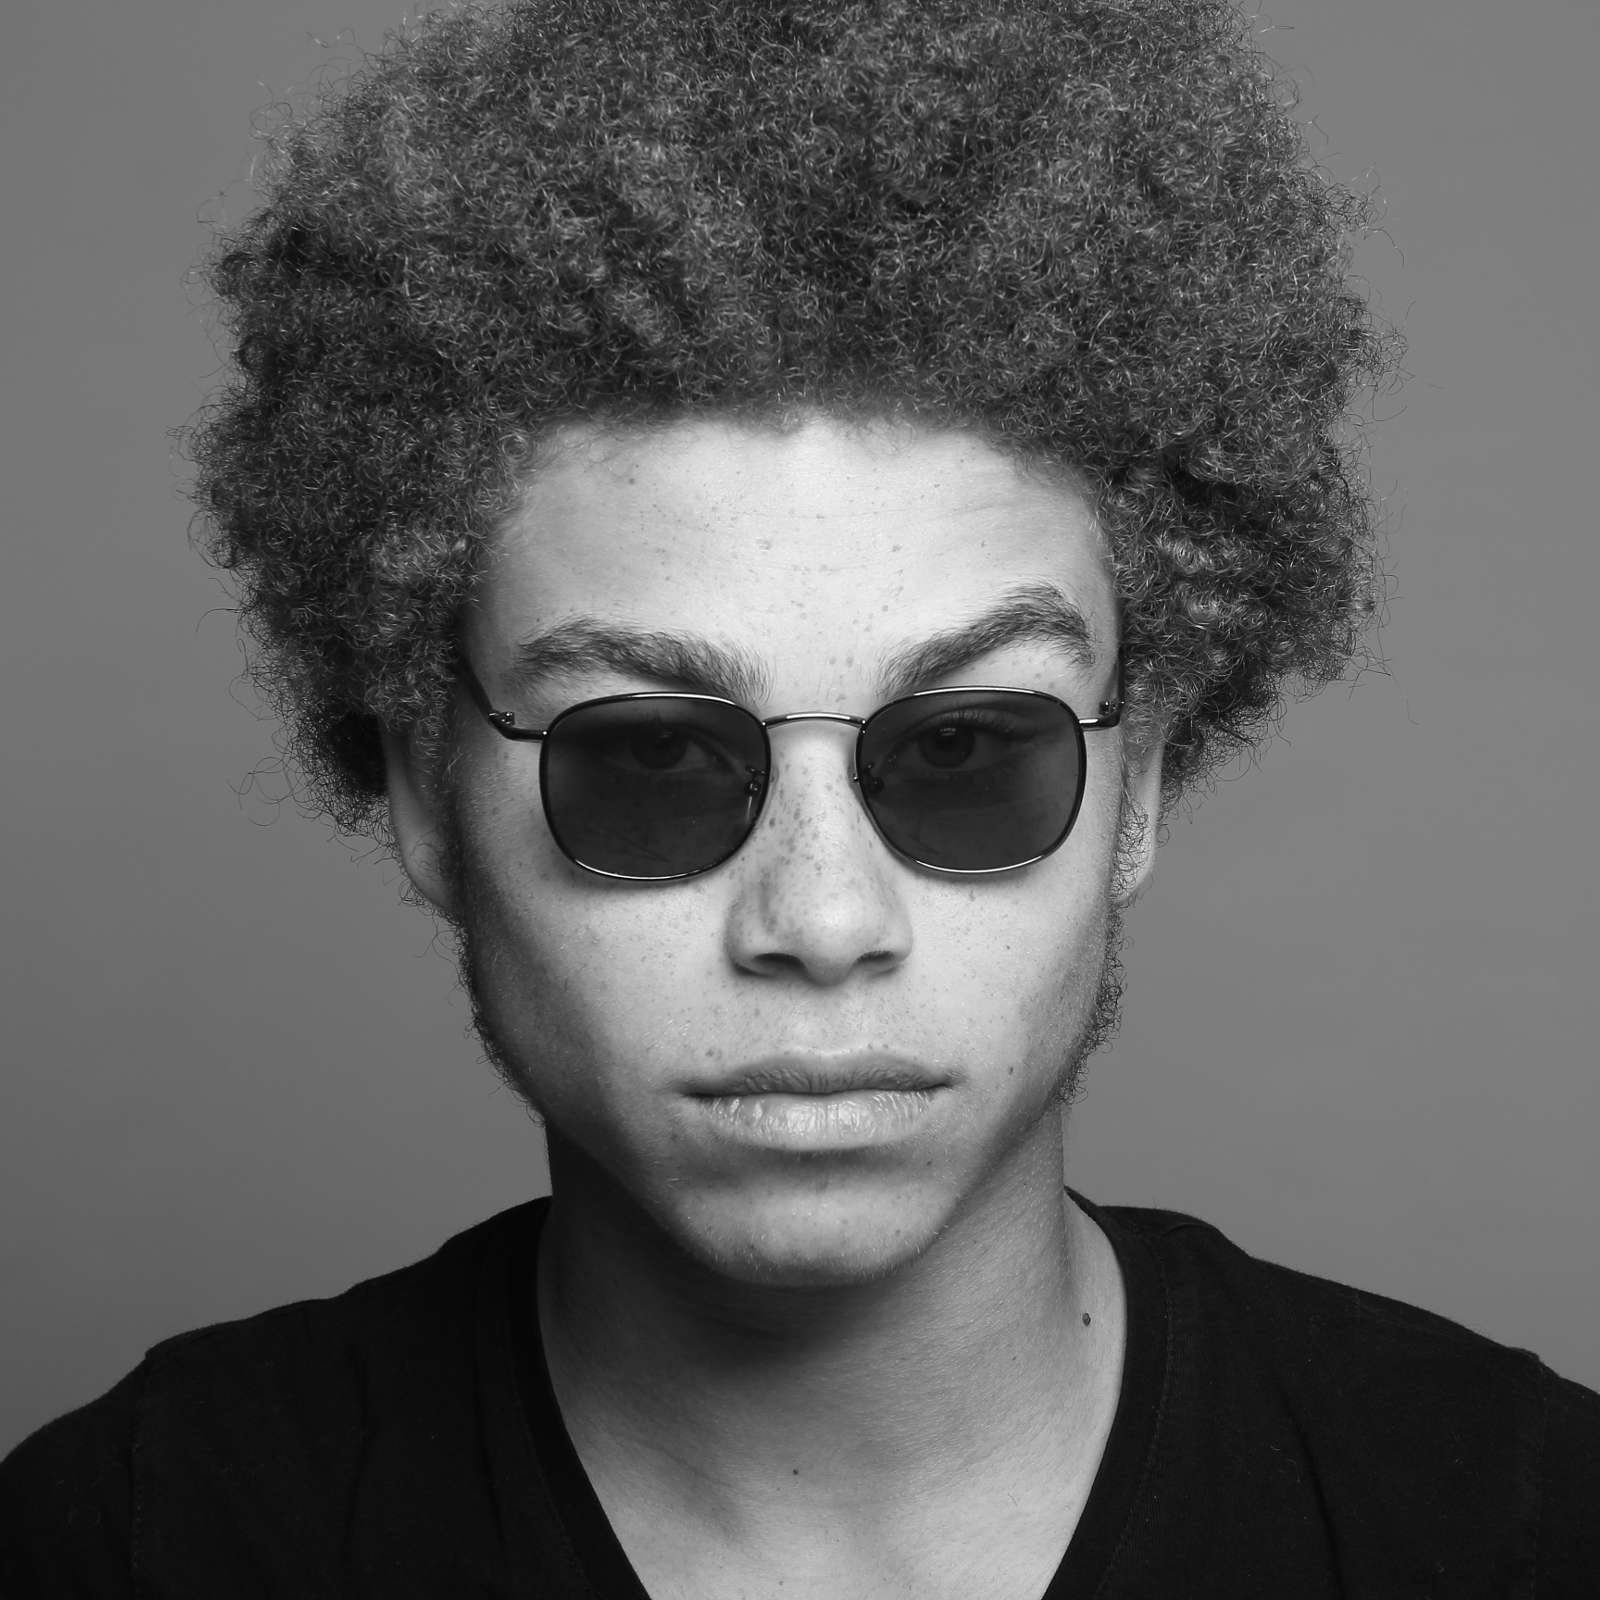 Top Afro Hairstyles for Men in 2019 (Visual Guide)